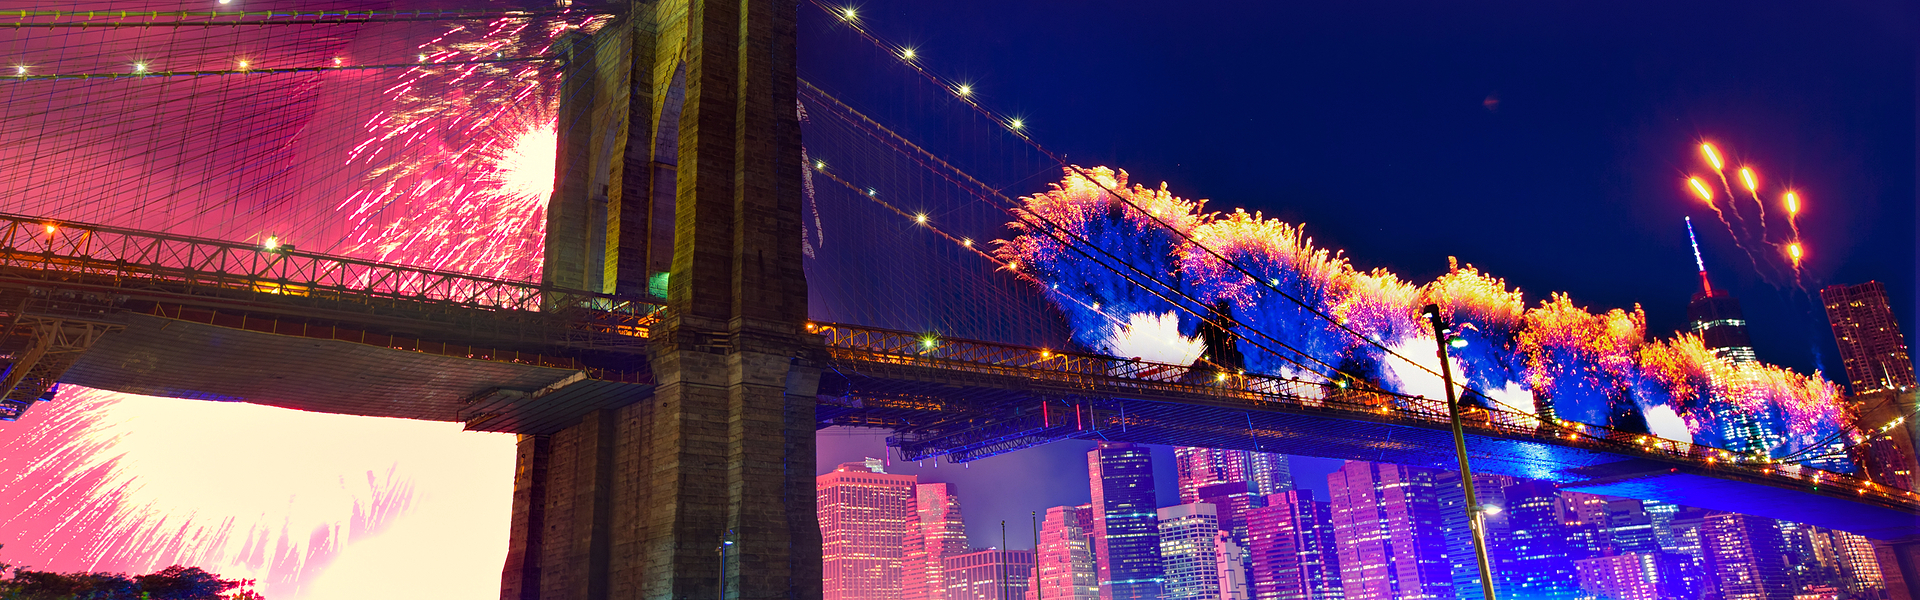 http://livingfreenyc.com/wp-content/uploads/2016/06/NYC-Fireworks.jpg